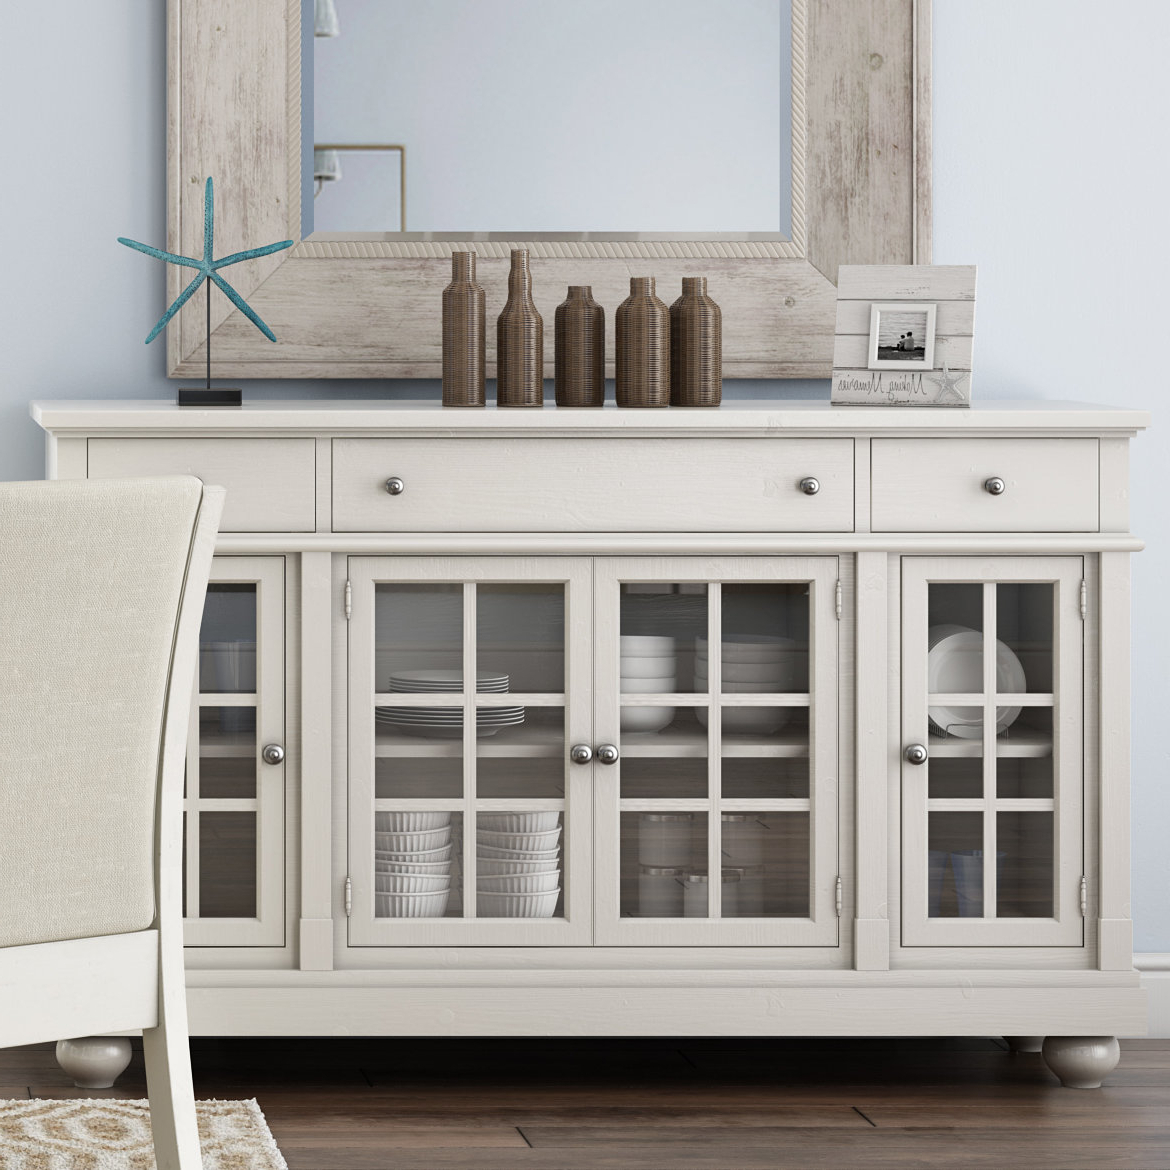 Farmhouse & Rustic Lark Manor Sideboards & Buffets | Birch Lane With Regard To Emmaline Sideboards (View 8 of 20)